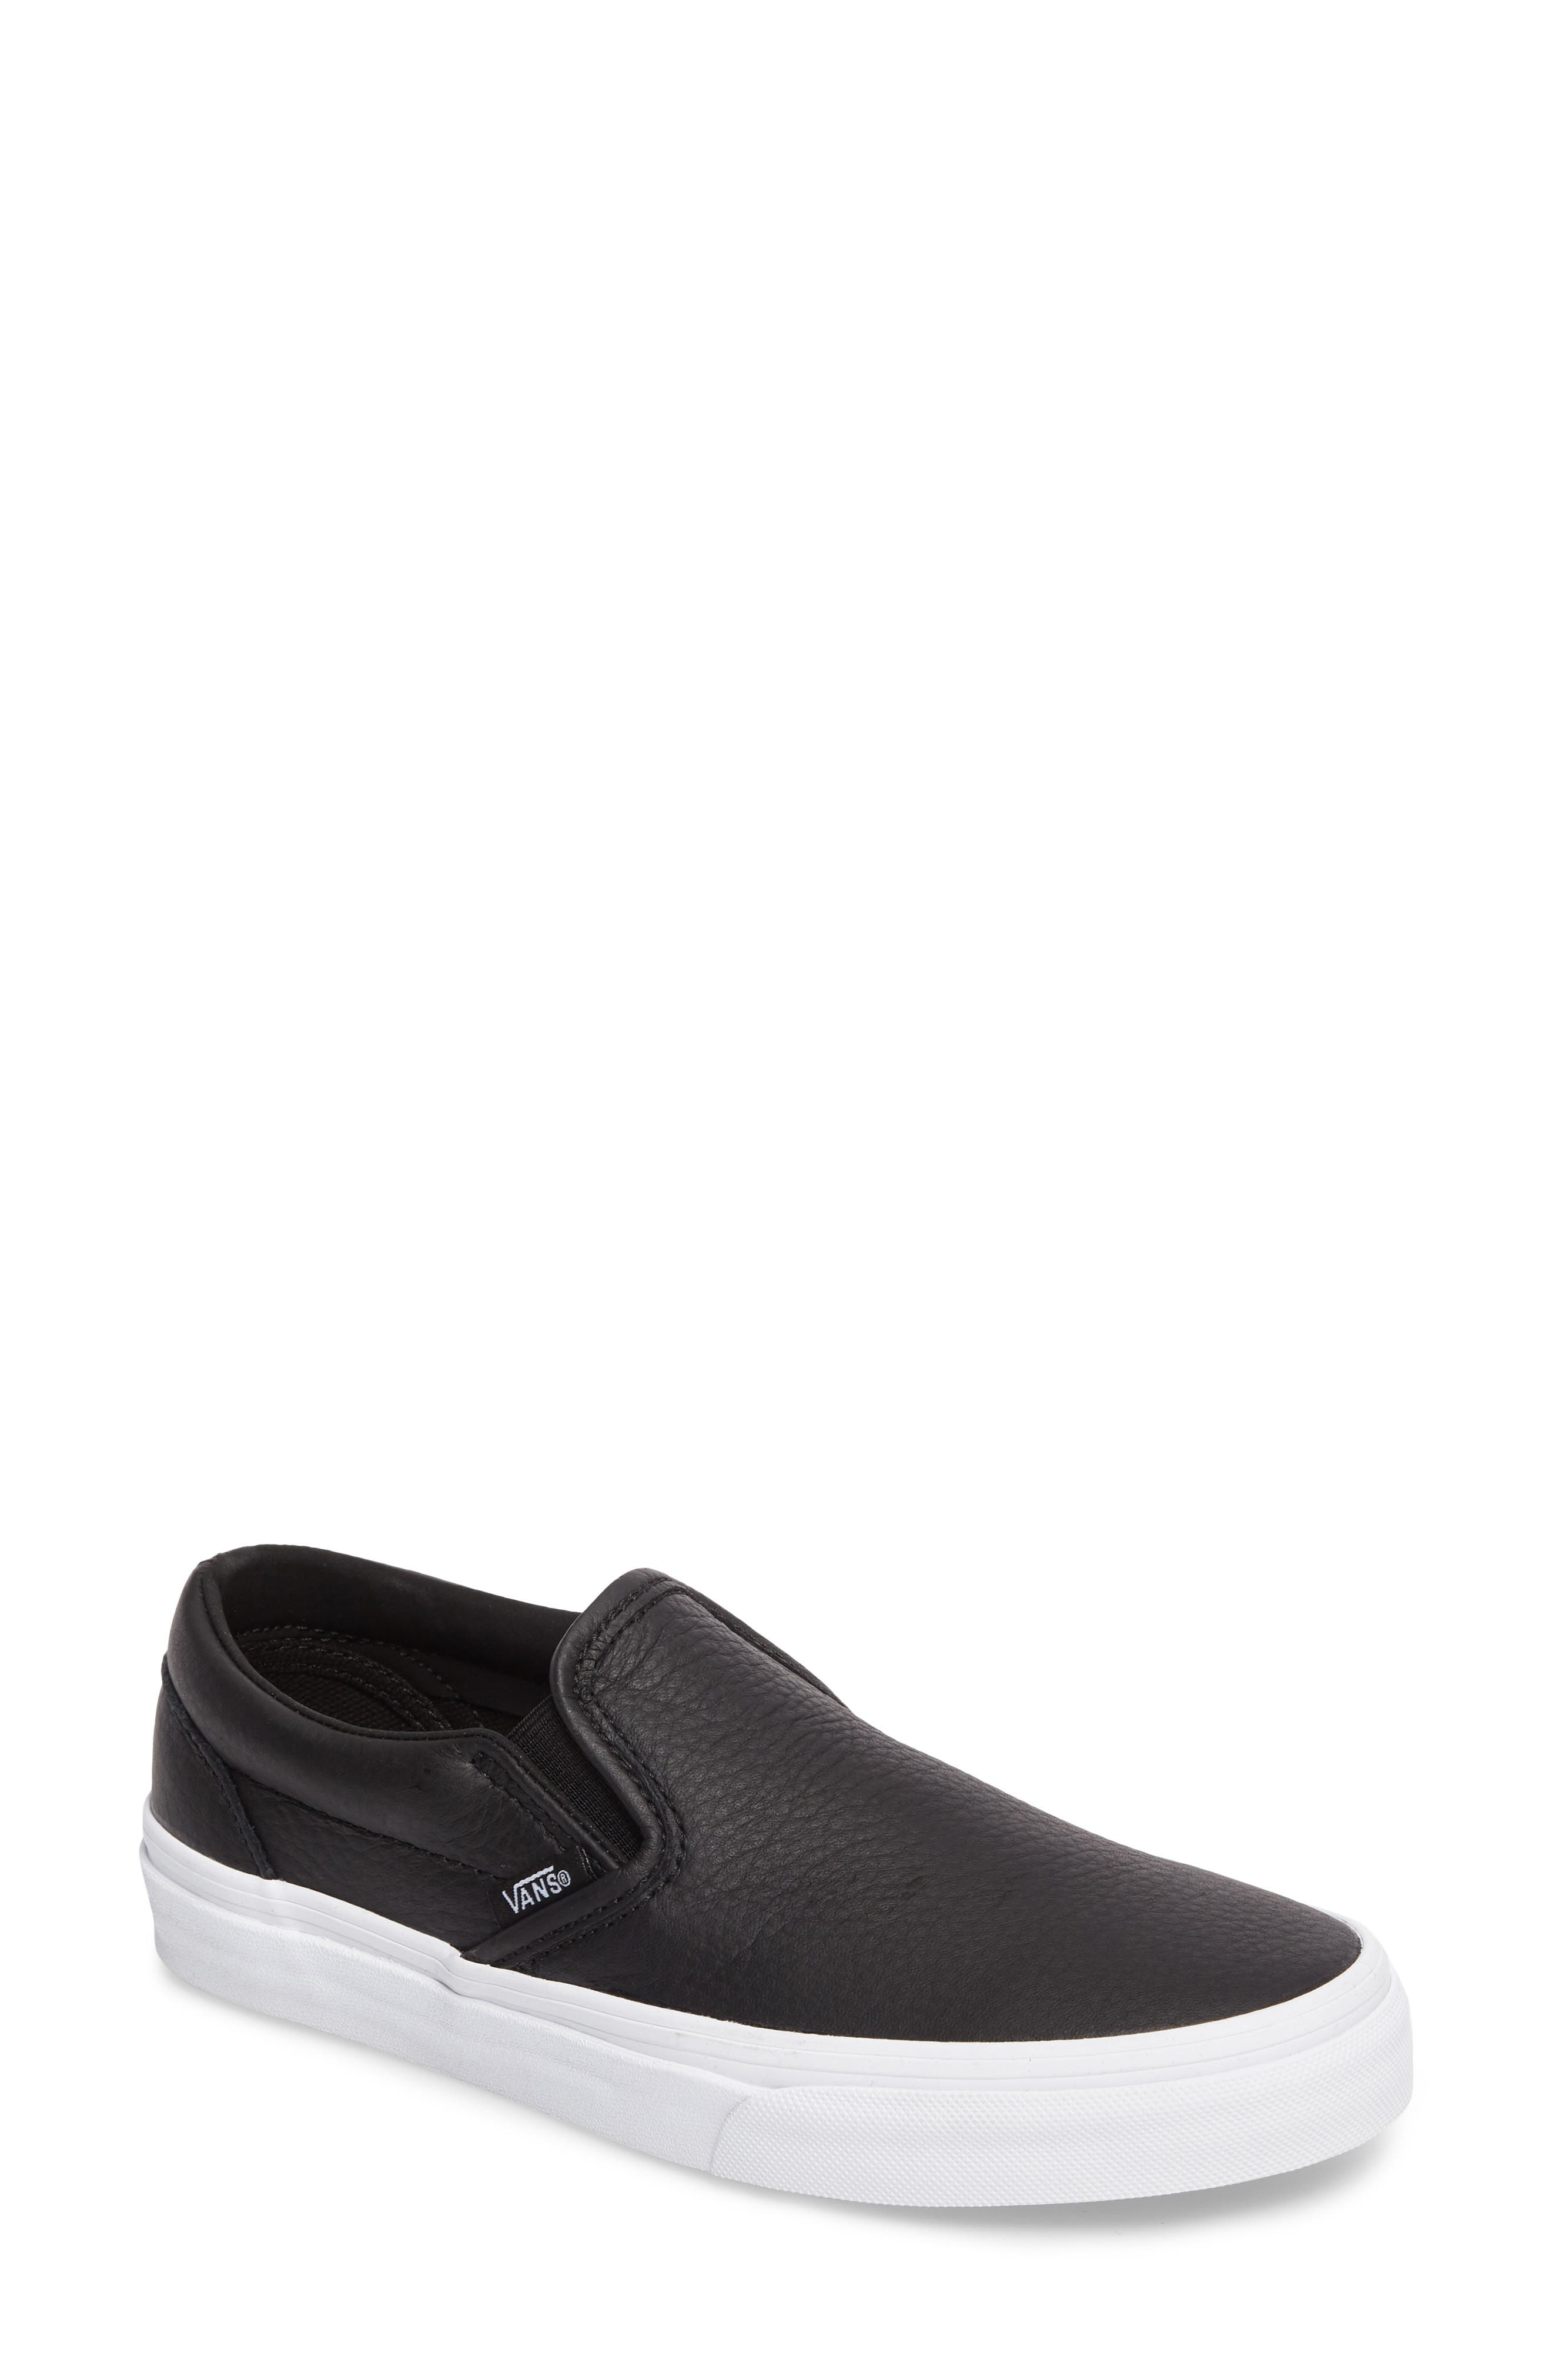 Classic Slip-On Sneaker,                             Main thumbnail 1, color,                             Black/ True White